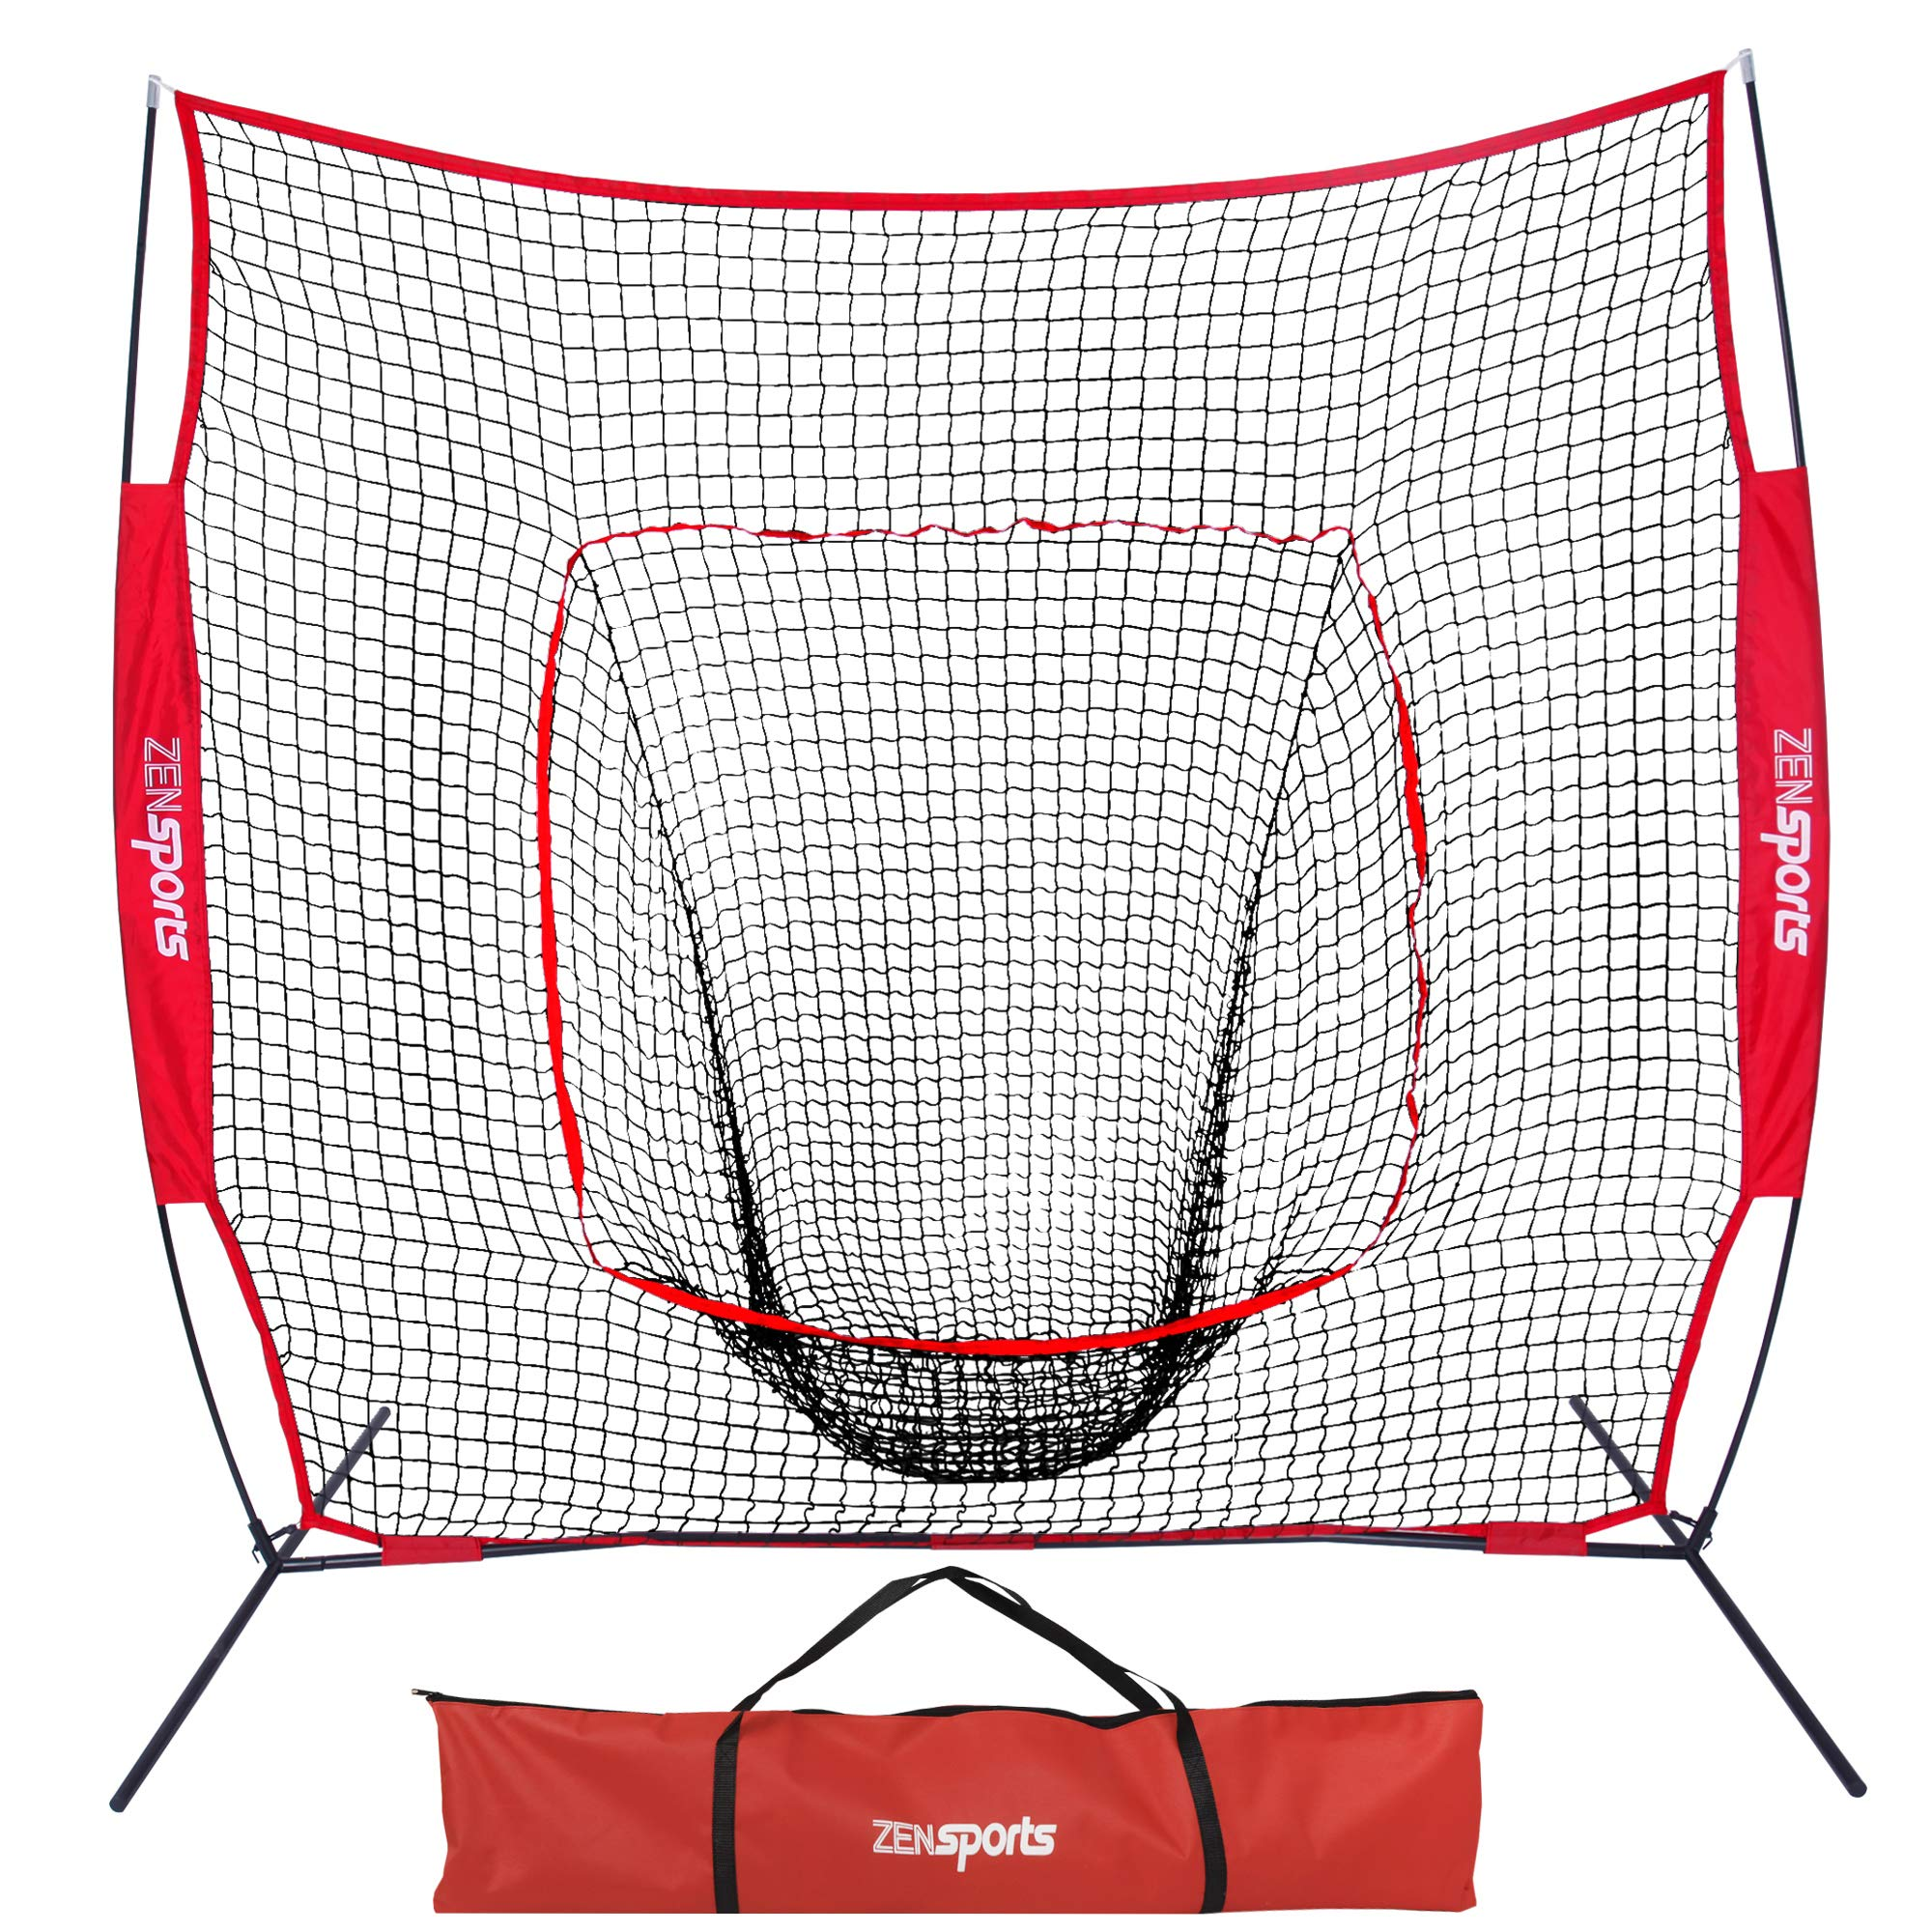 ZENY 7'×7' Baseball Softball Practice Net Hitting Batting Catching Pitching Training Net w/Carry Bag & Metal Bow Frame, Backstop Screen Equipment Training Aids by ZENY